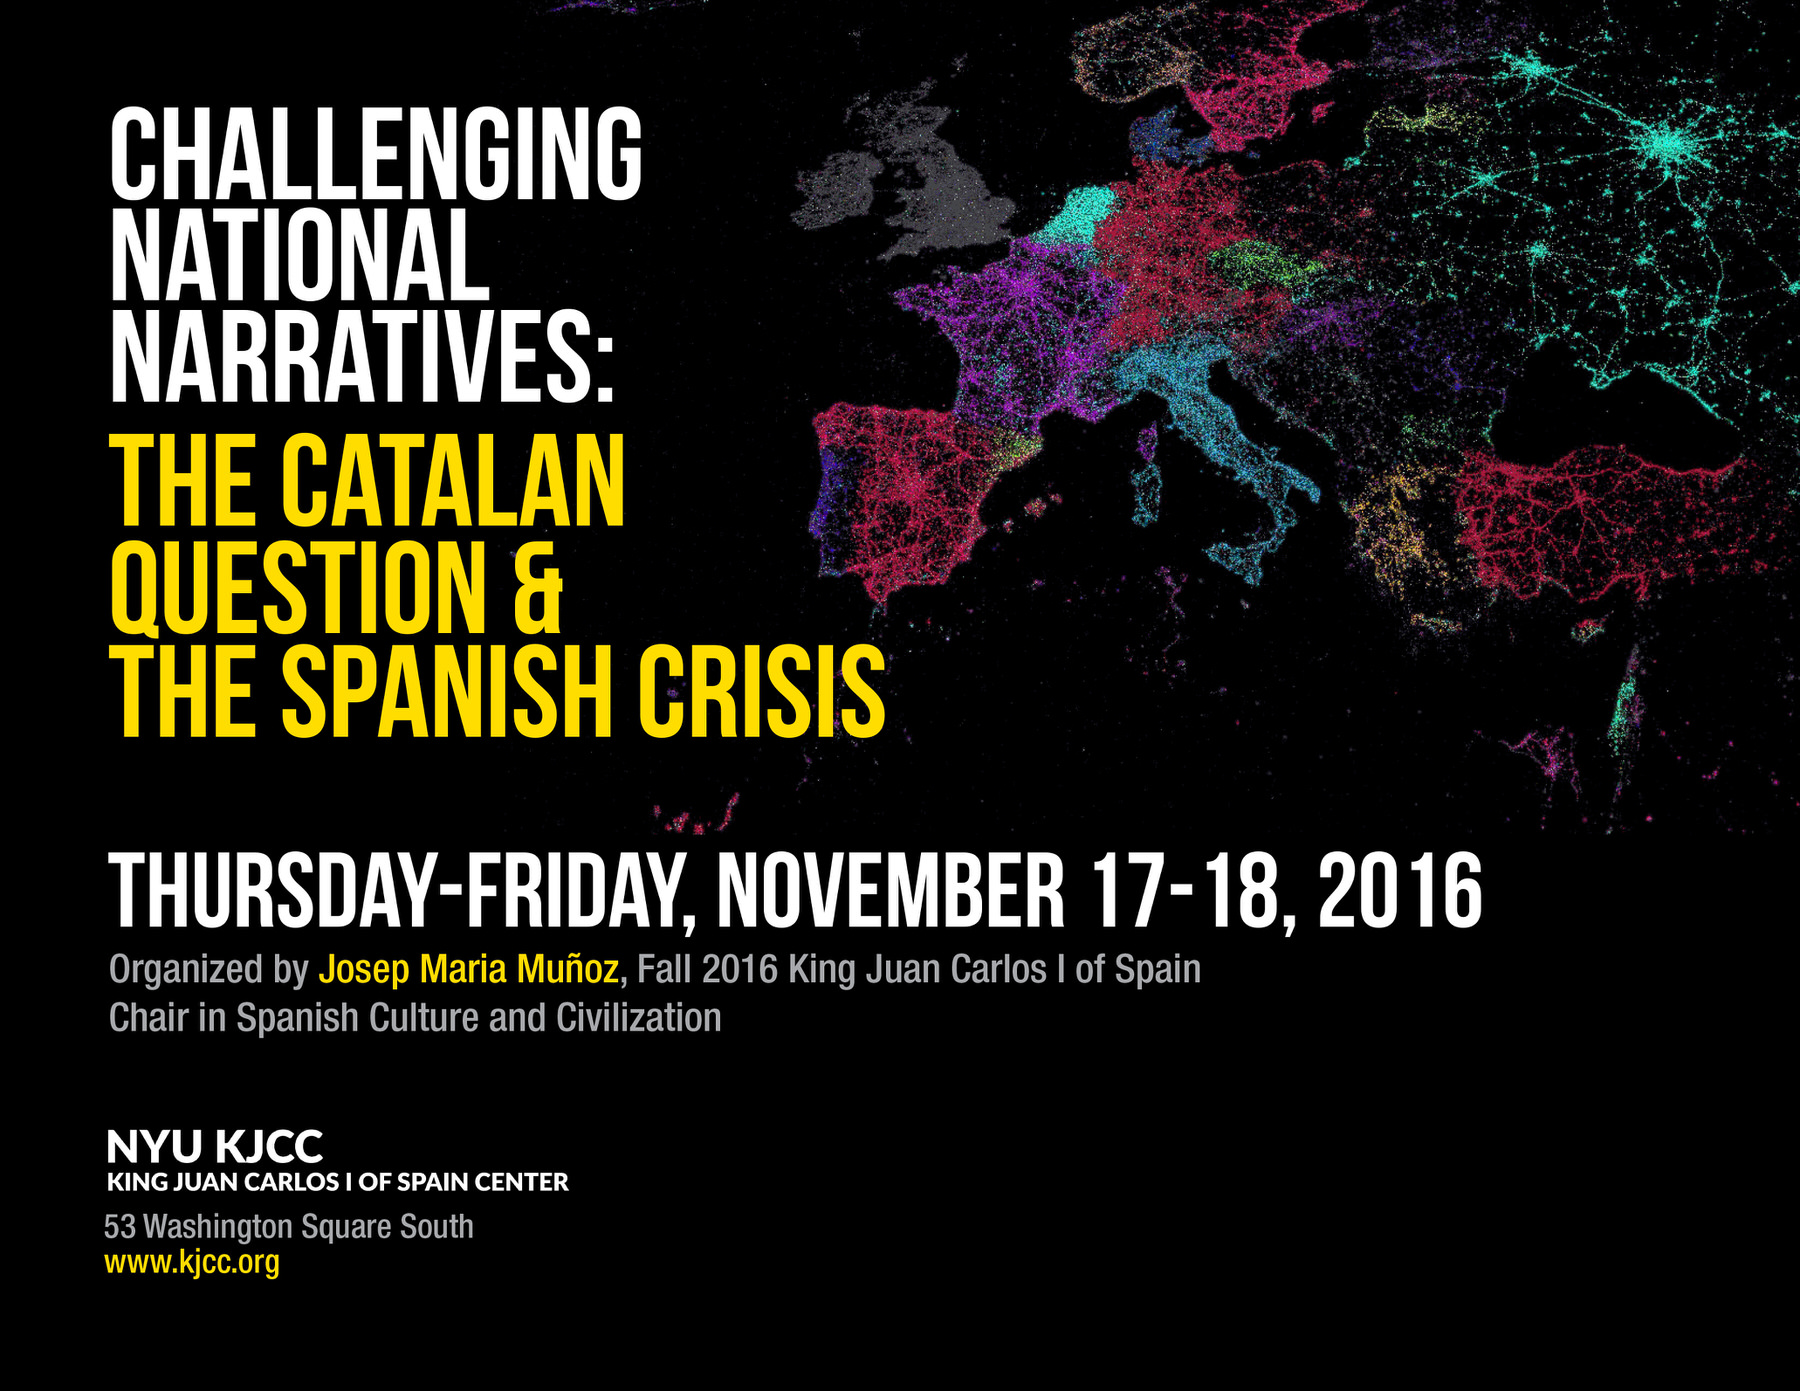 image from VIDEO AVAILABLE - Challenging National Narratives: the Catalan Question & the Spanish Crisis -